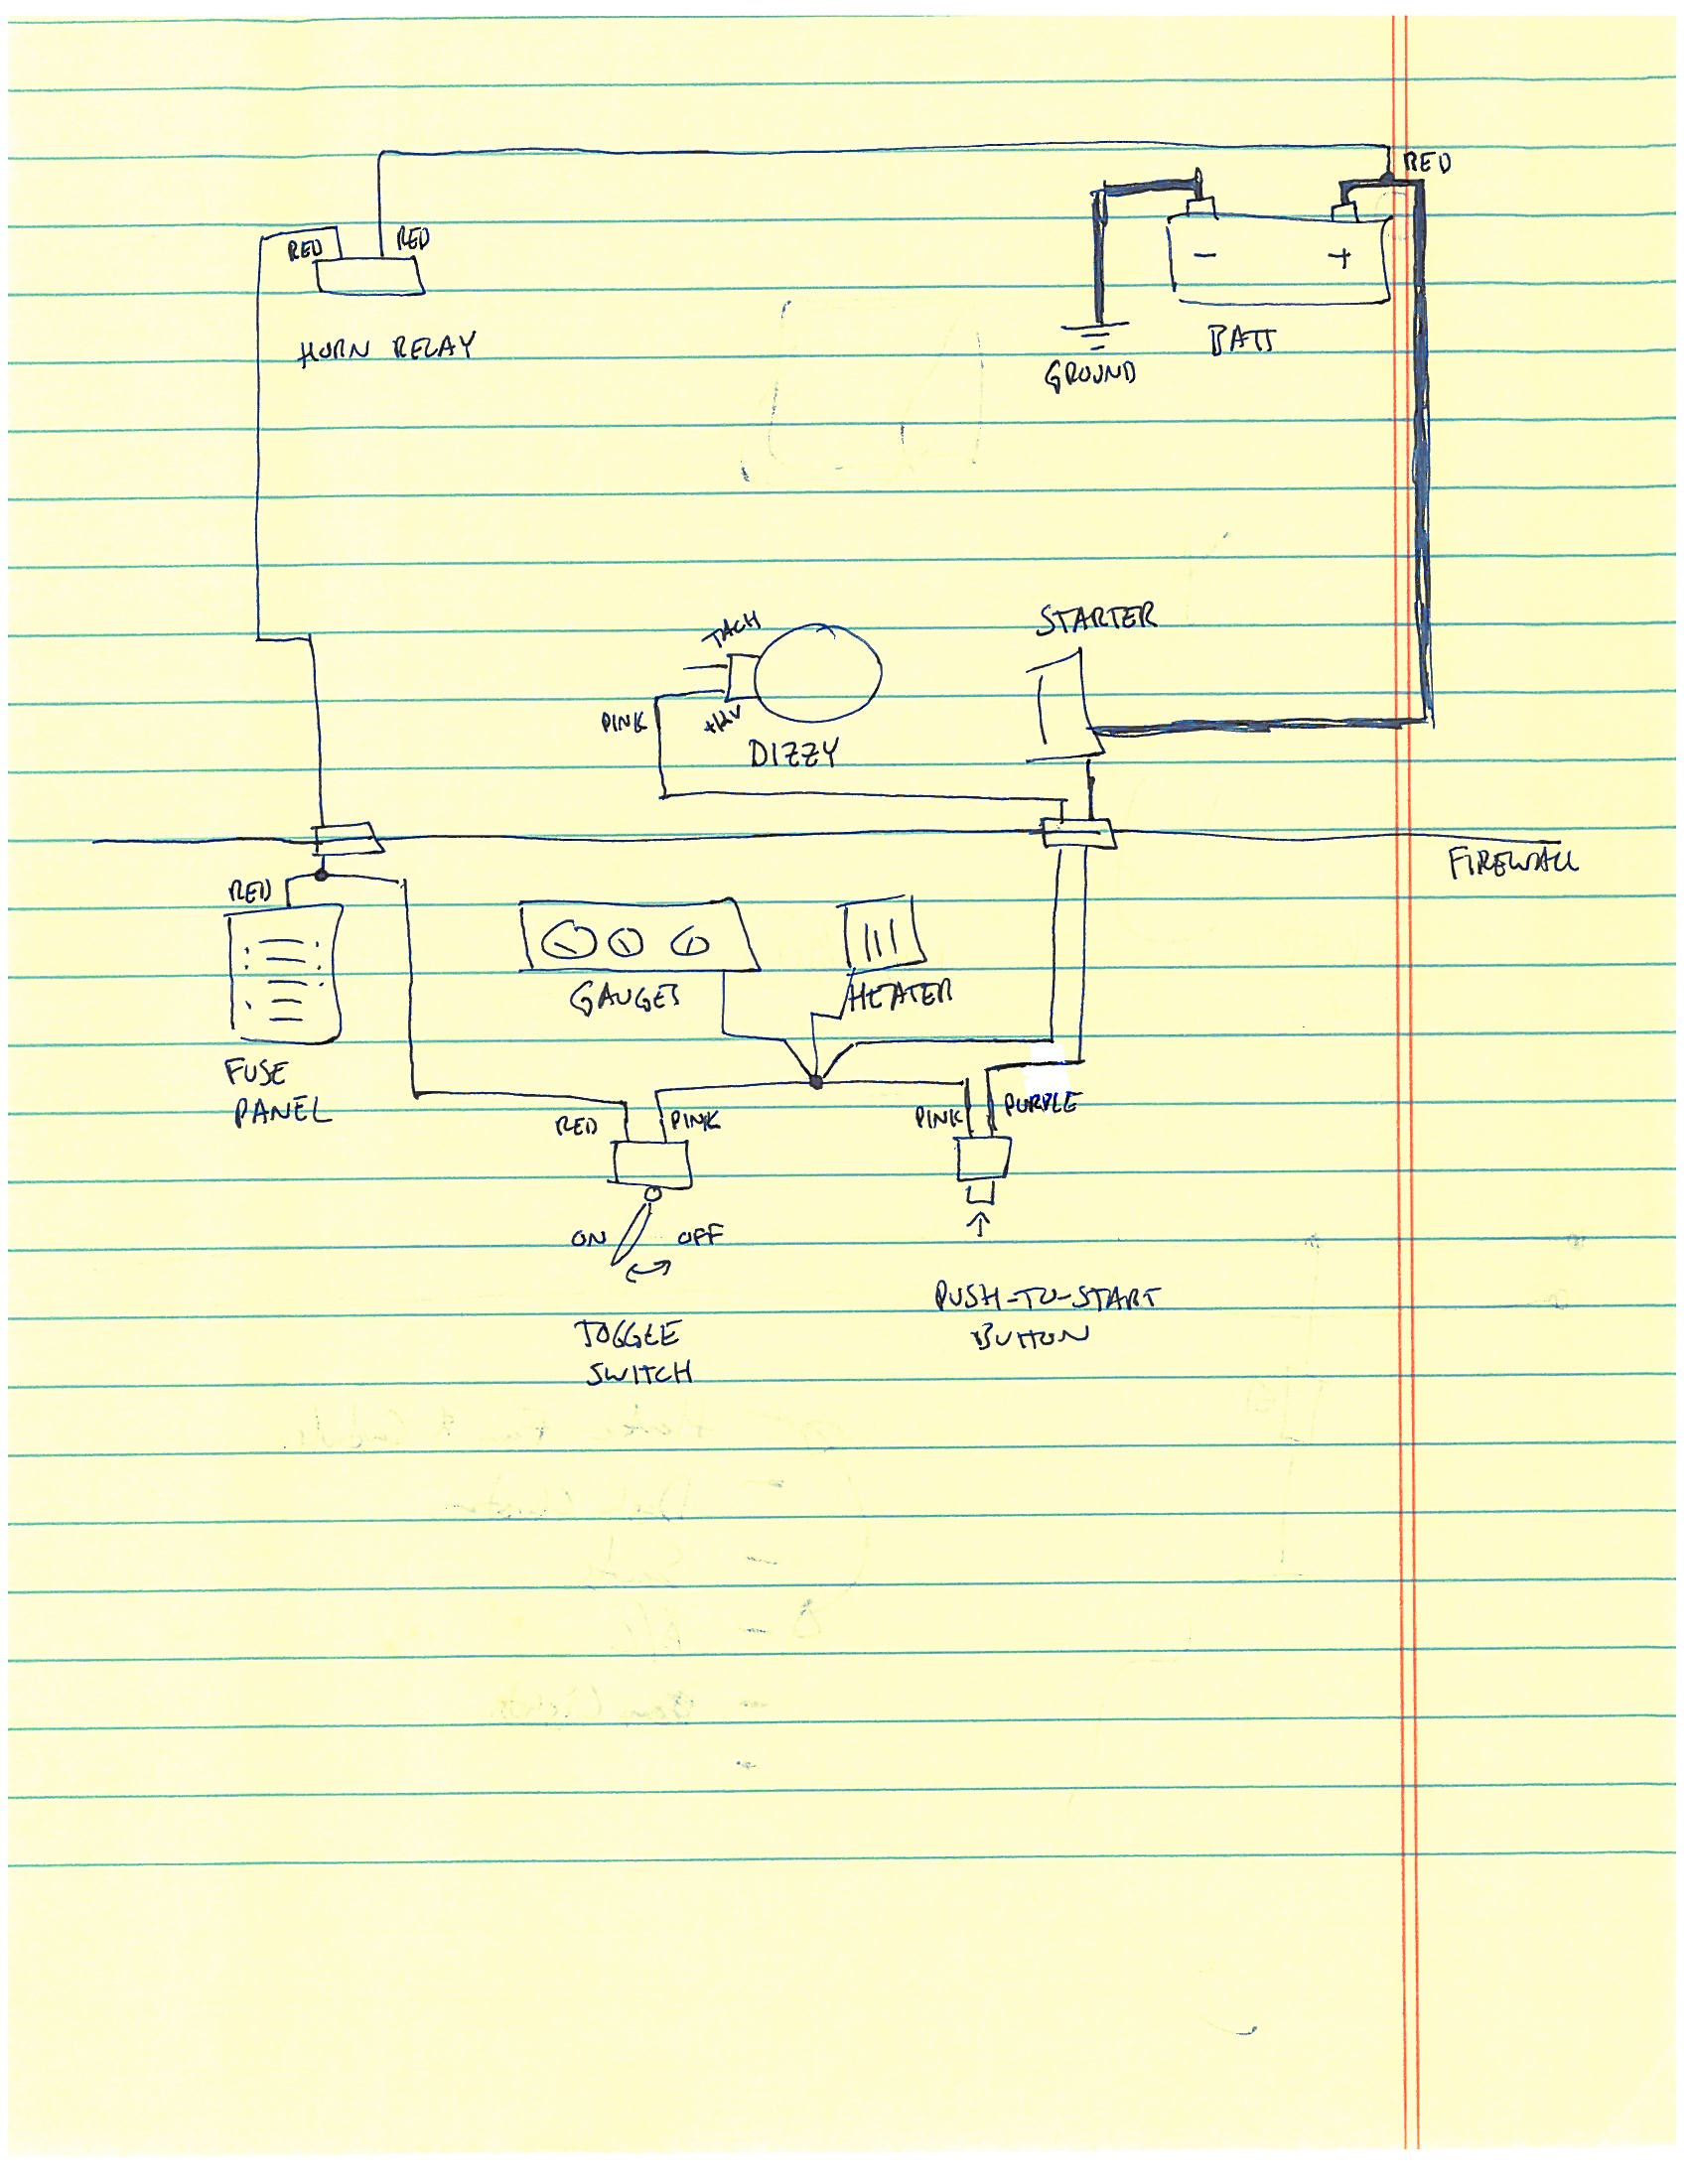 1965 el camino ignition switch wiring diagram wiring diagram blog67 el camino wiring diagram wipers wiring diagram 1964 el camino wiring diagram 1965 el camino ignition switch wiring diagram